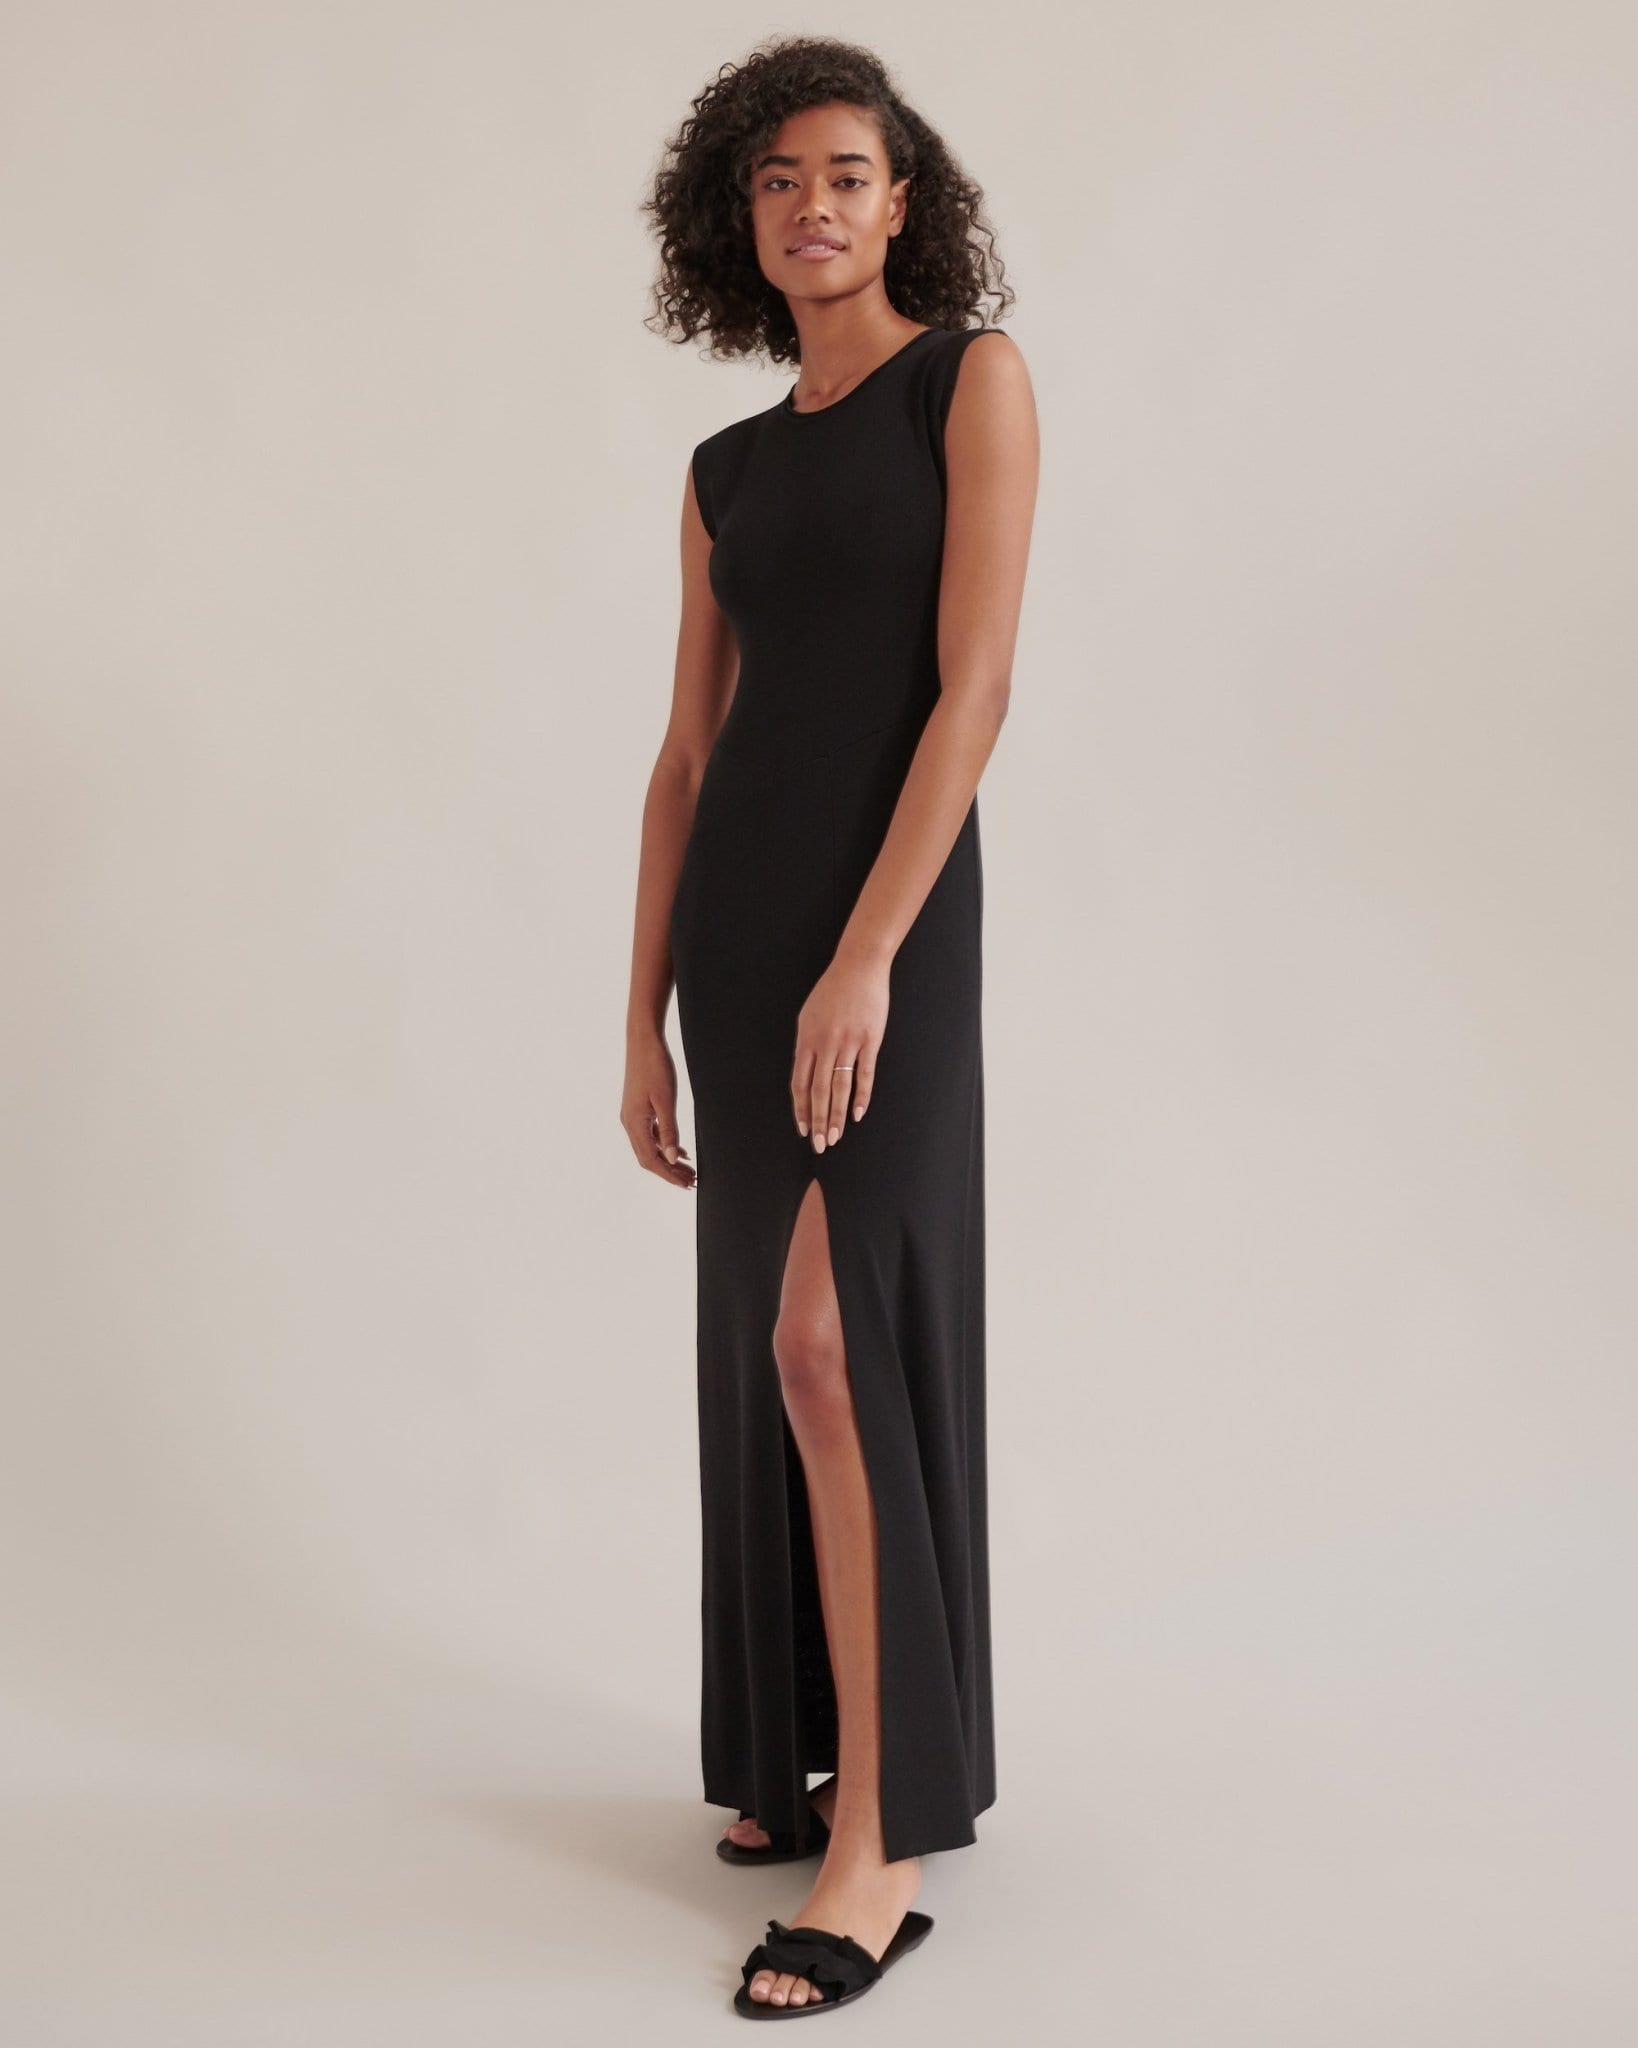 Meghan Sleeveless Maxi Dress / Neighborhood Goods